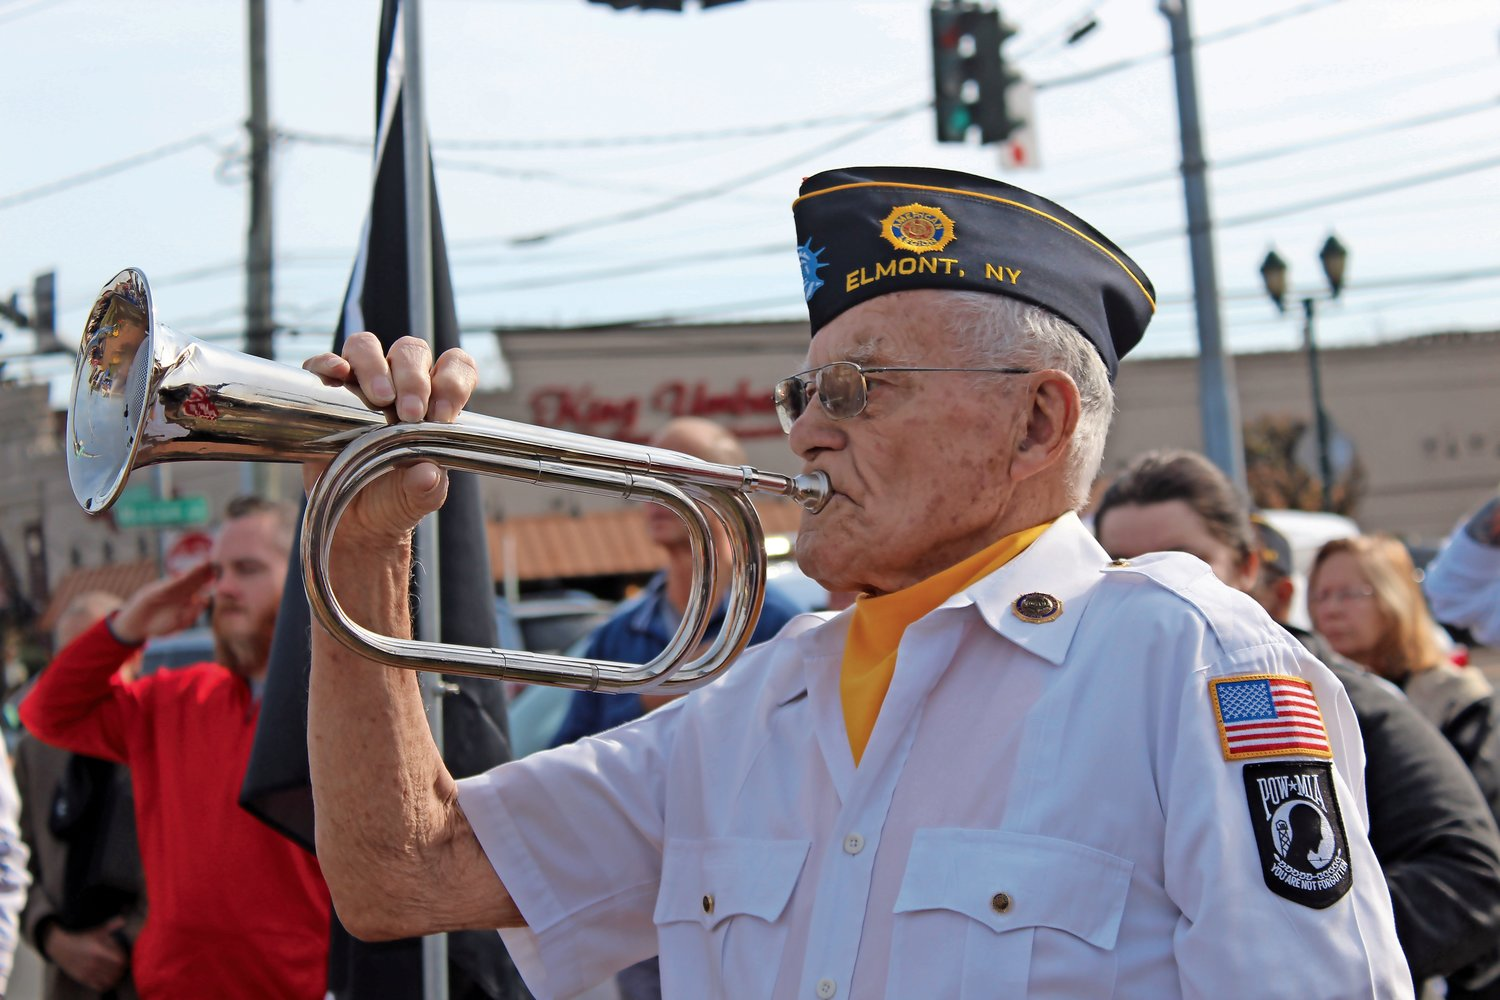 George Dee played the bugle at American Legion Post 1033's annual Veterans Day ceremony on Nov. 11 at 11 a.m.